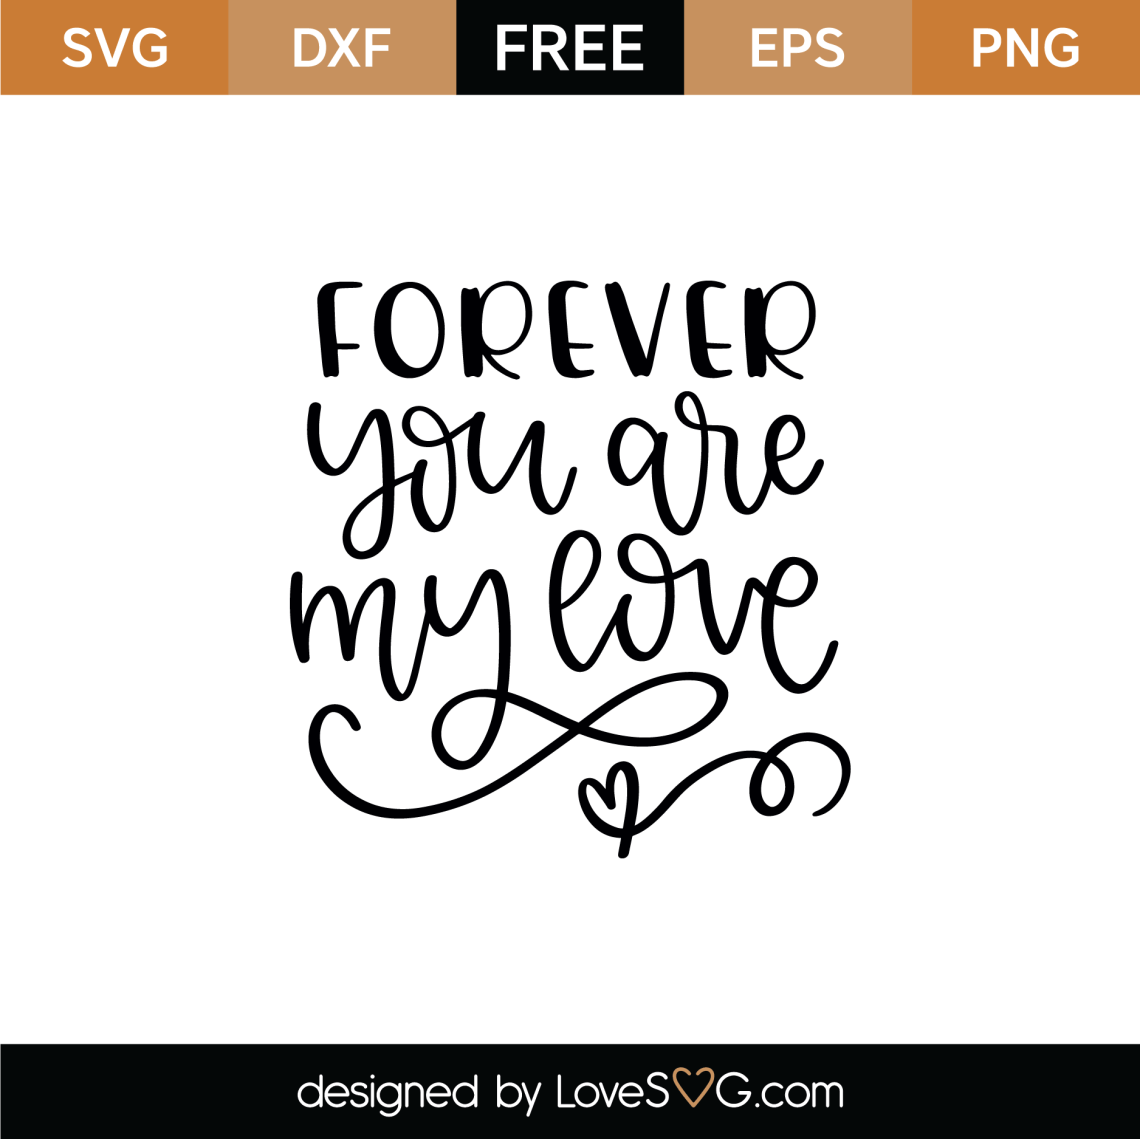 Download Free Forever You Are My Love SVG Cut File | Lovesvg.com